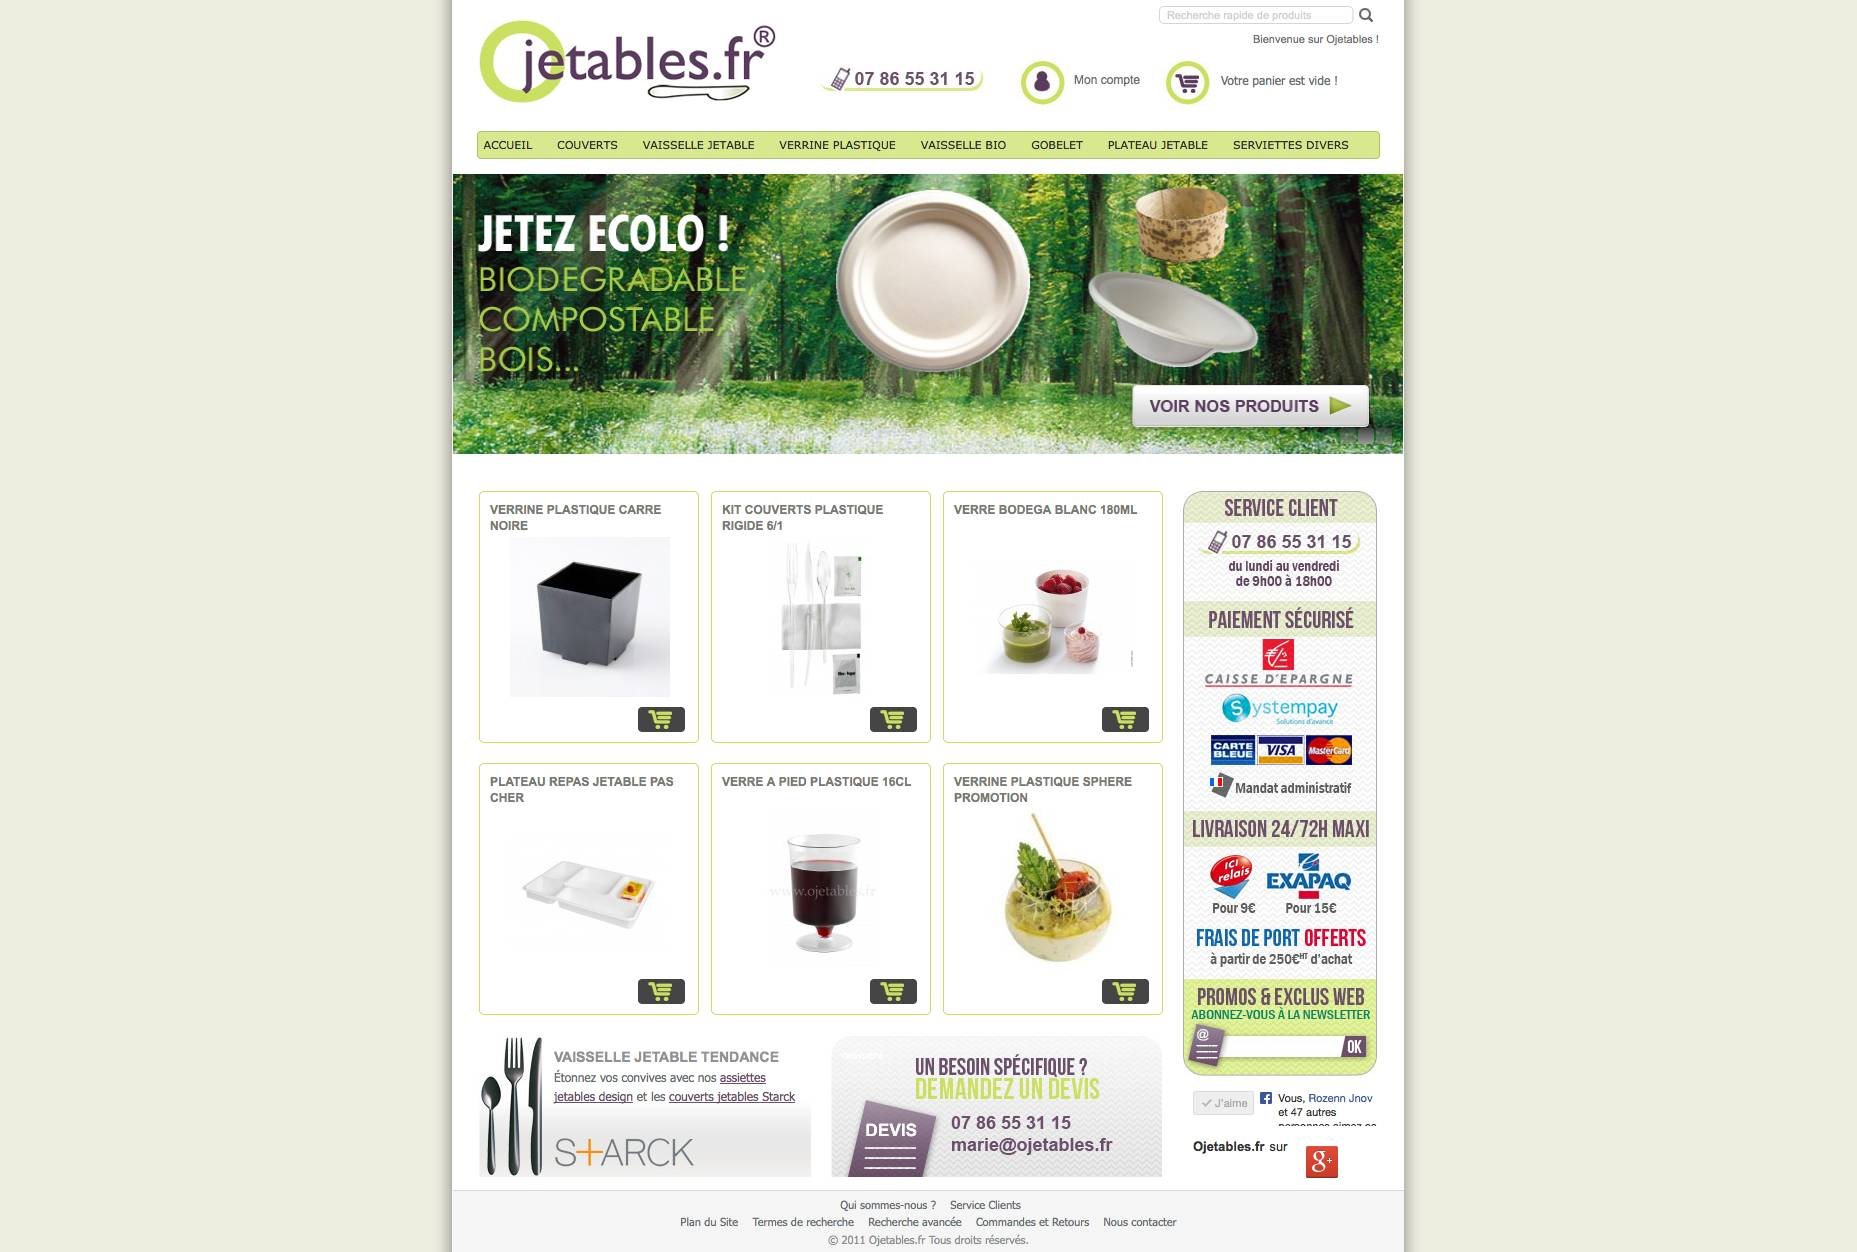 site magento commerce couverts jetables